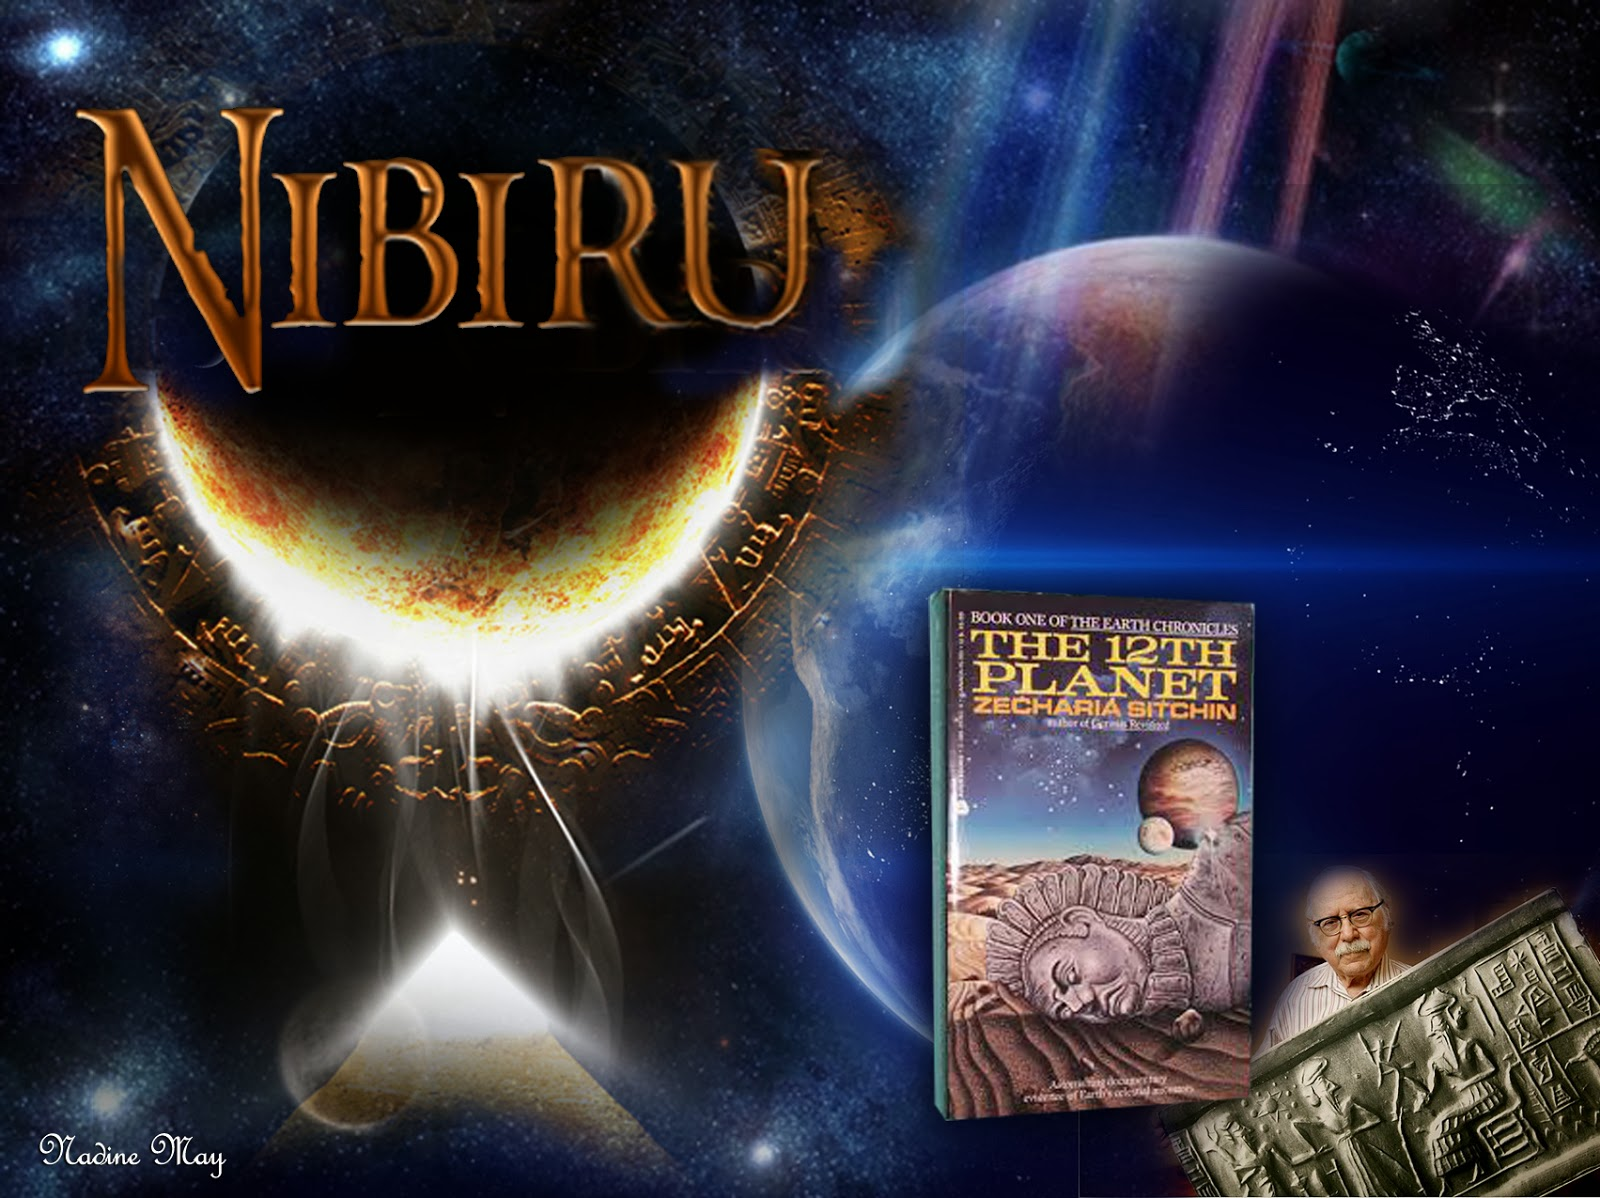 http://www.wikinut.com/the-hidden-histories-of-planet-earth/1lz8_4qo/2i636gyo/#Planet-X-Nibiru